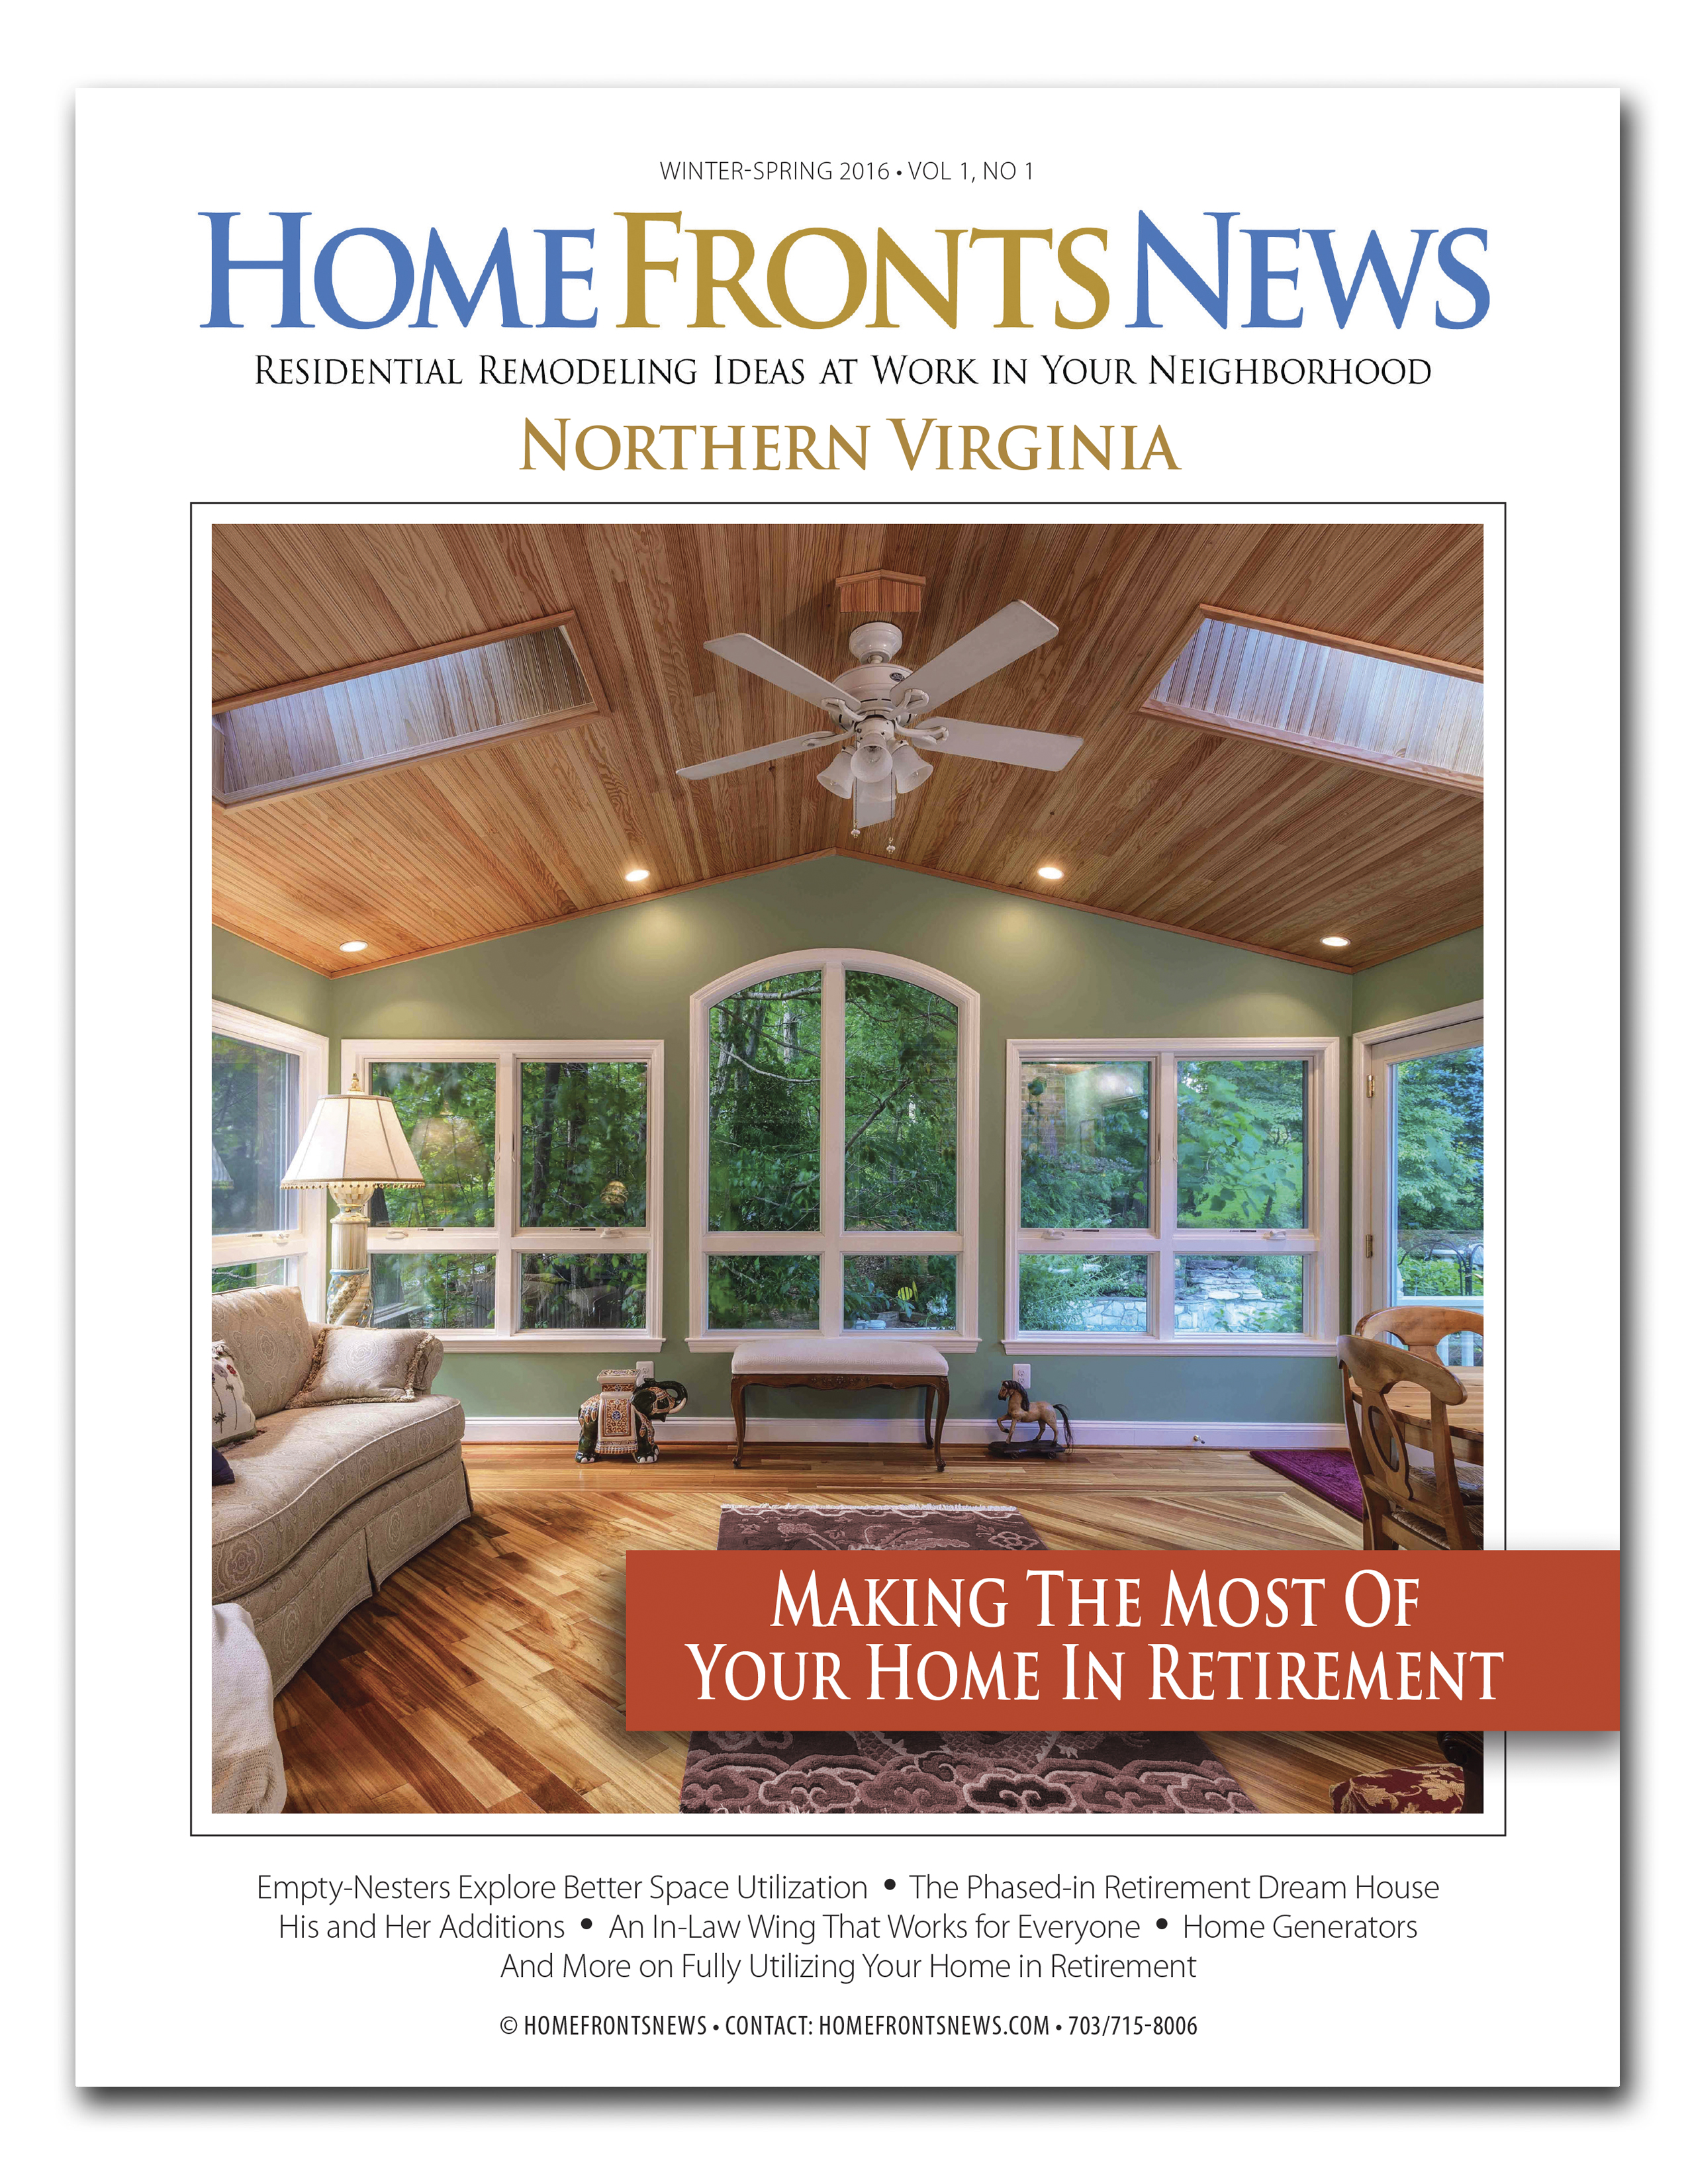 Home Fronts News 2016 WINTER